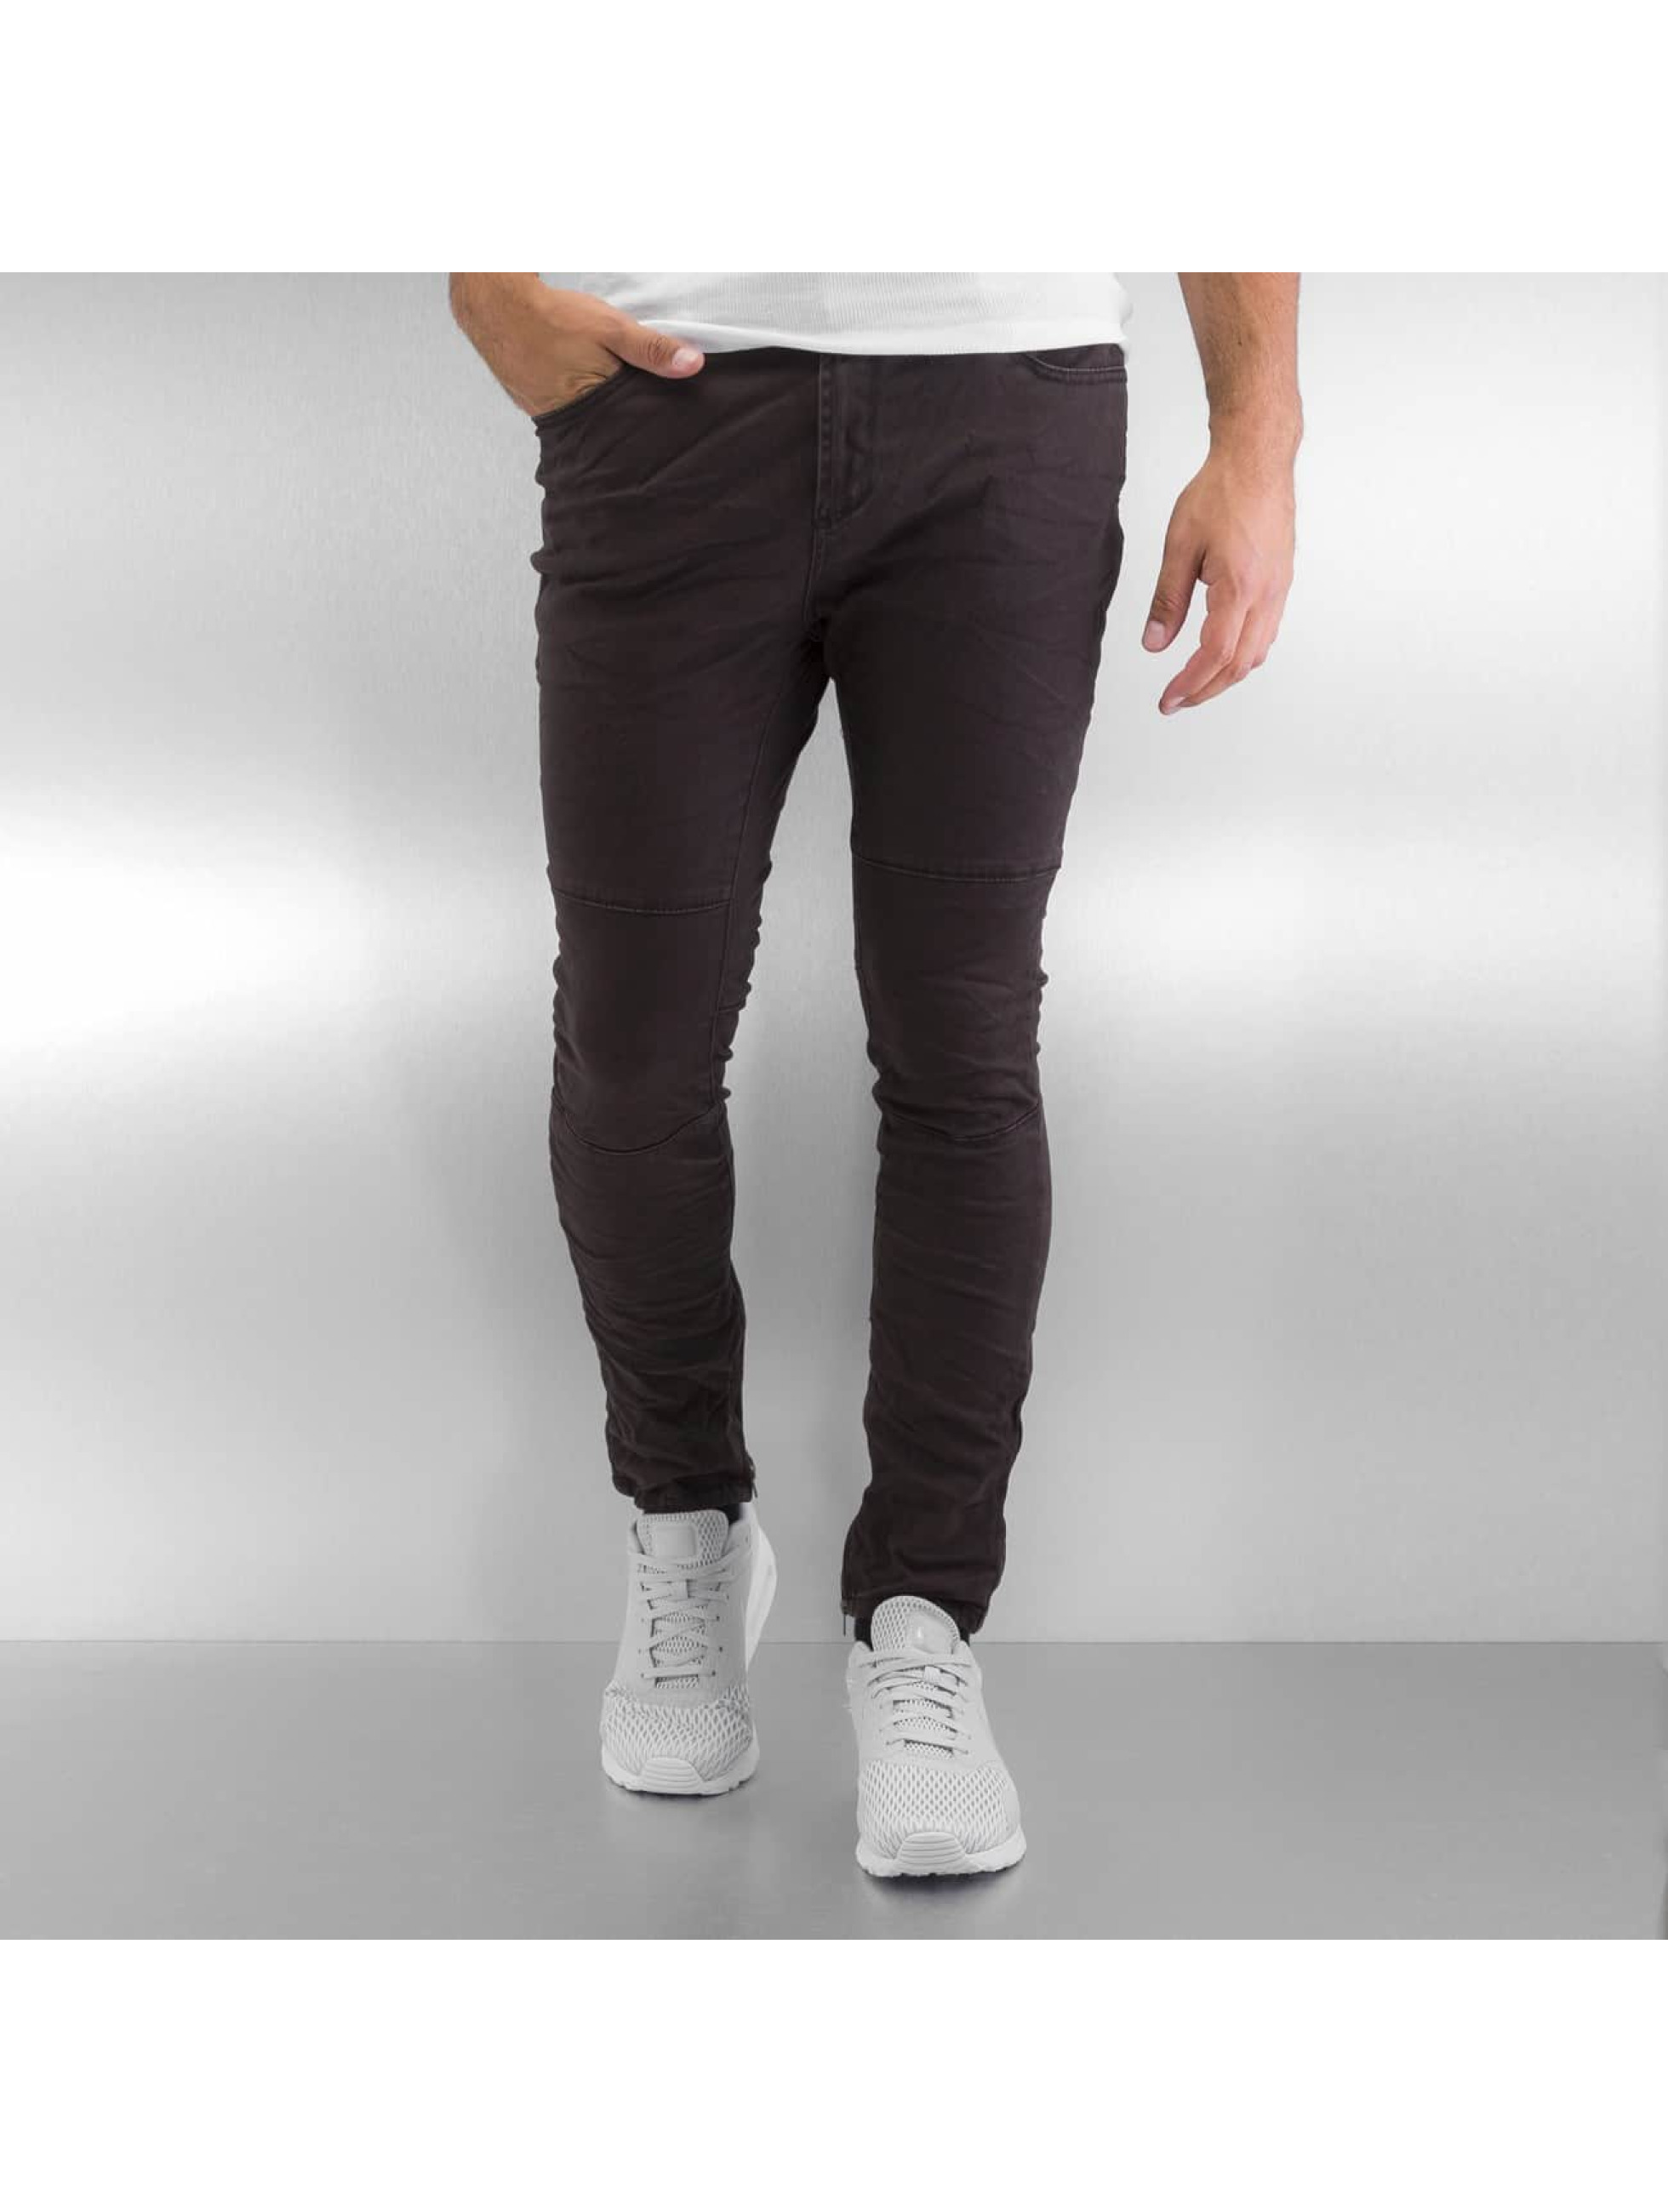 Authentic Style Chino Style grijs